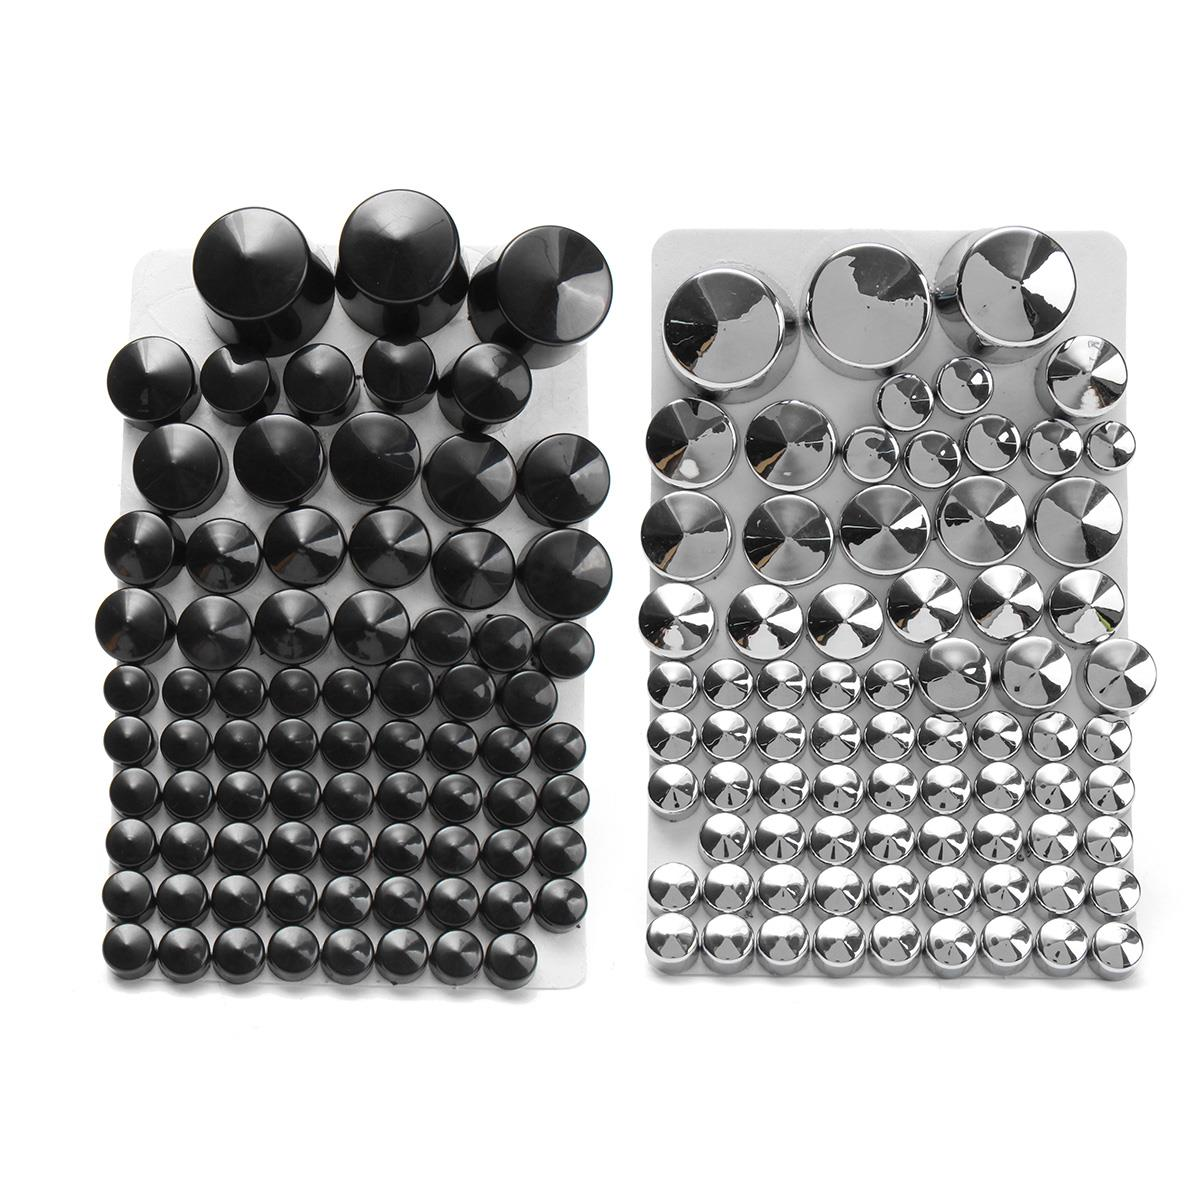 Motorcycle Chrome ABS Bolt Toppers Bolt Cap For Harley-Davidson Softail Twin Cam 1984-2006 2005 Silver/Black 87 pcs chrome custom motorcycle skeleton mirrors for harley davidson softail heritage classic